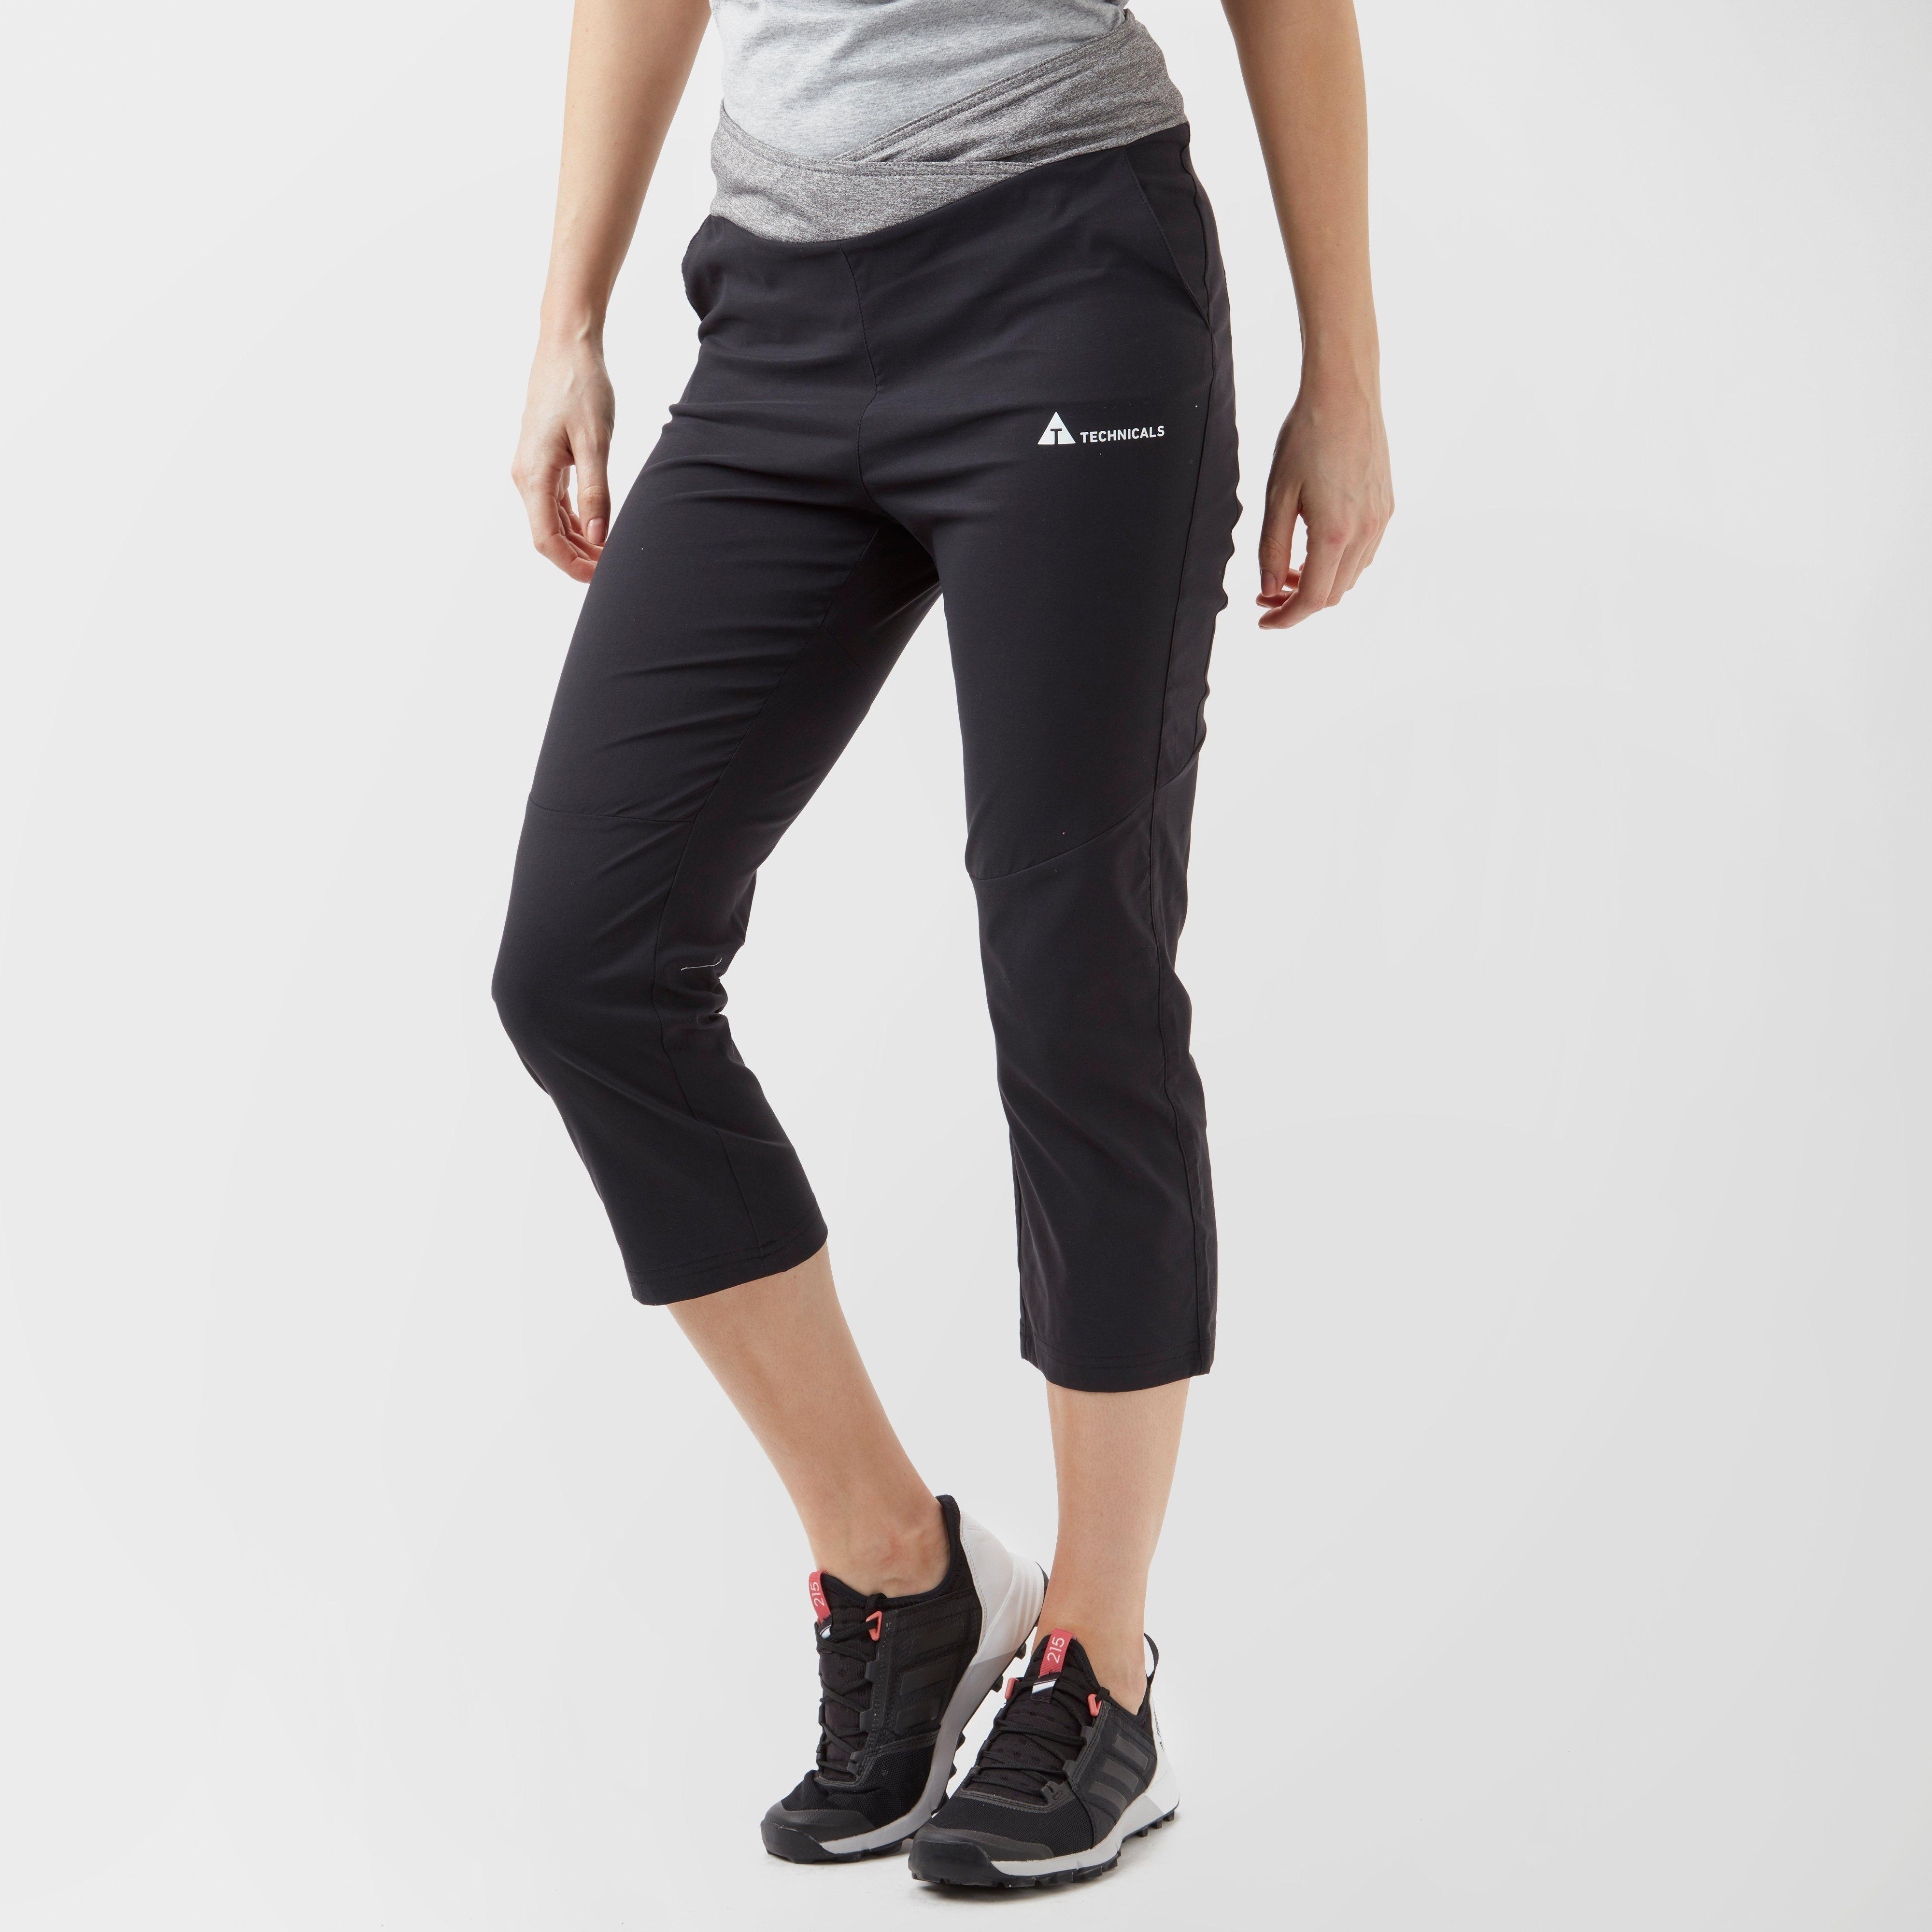 New Technicals Women's Vitality Pants Outdoor Clothing